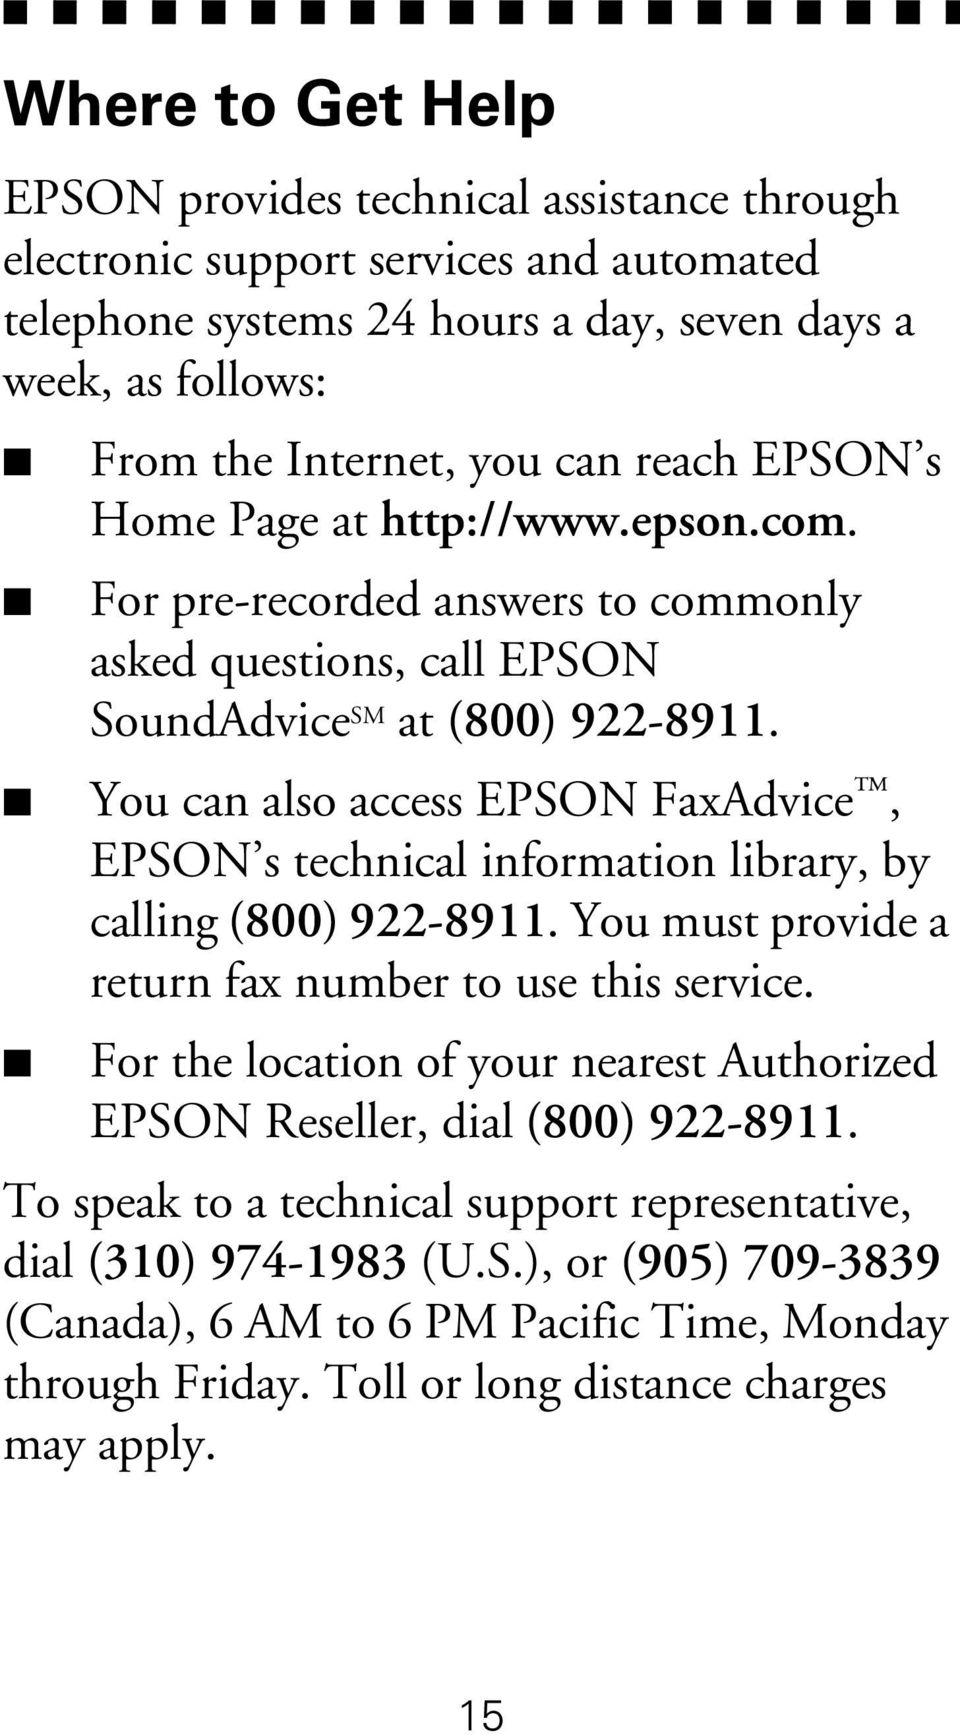 You can also access EPSON FaxAdvice, EPSON s technical information library, by calling (800) 922-8911. You must provide a return fax number to use this service.